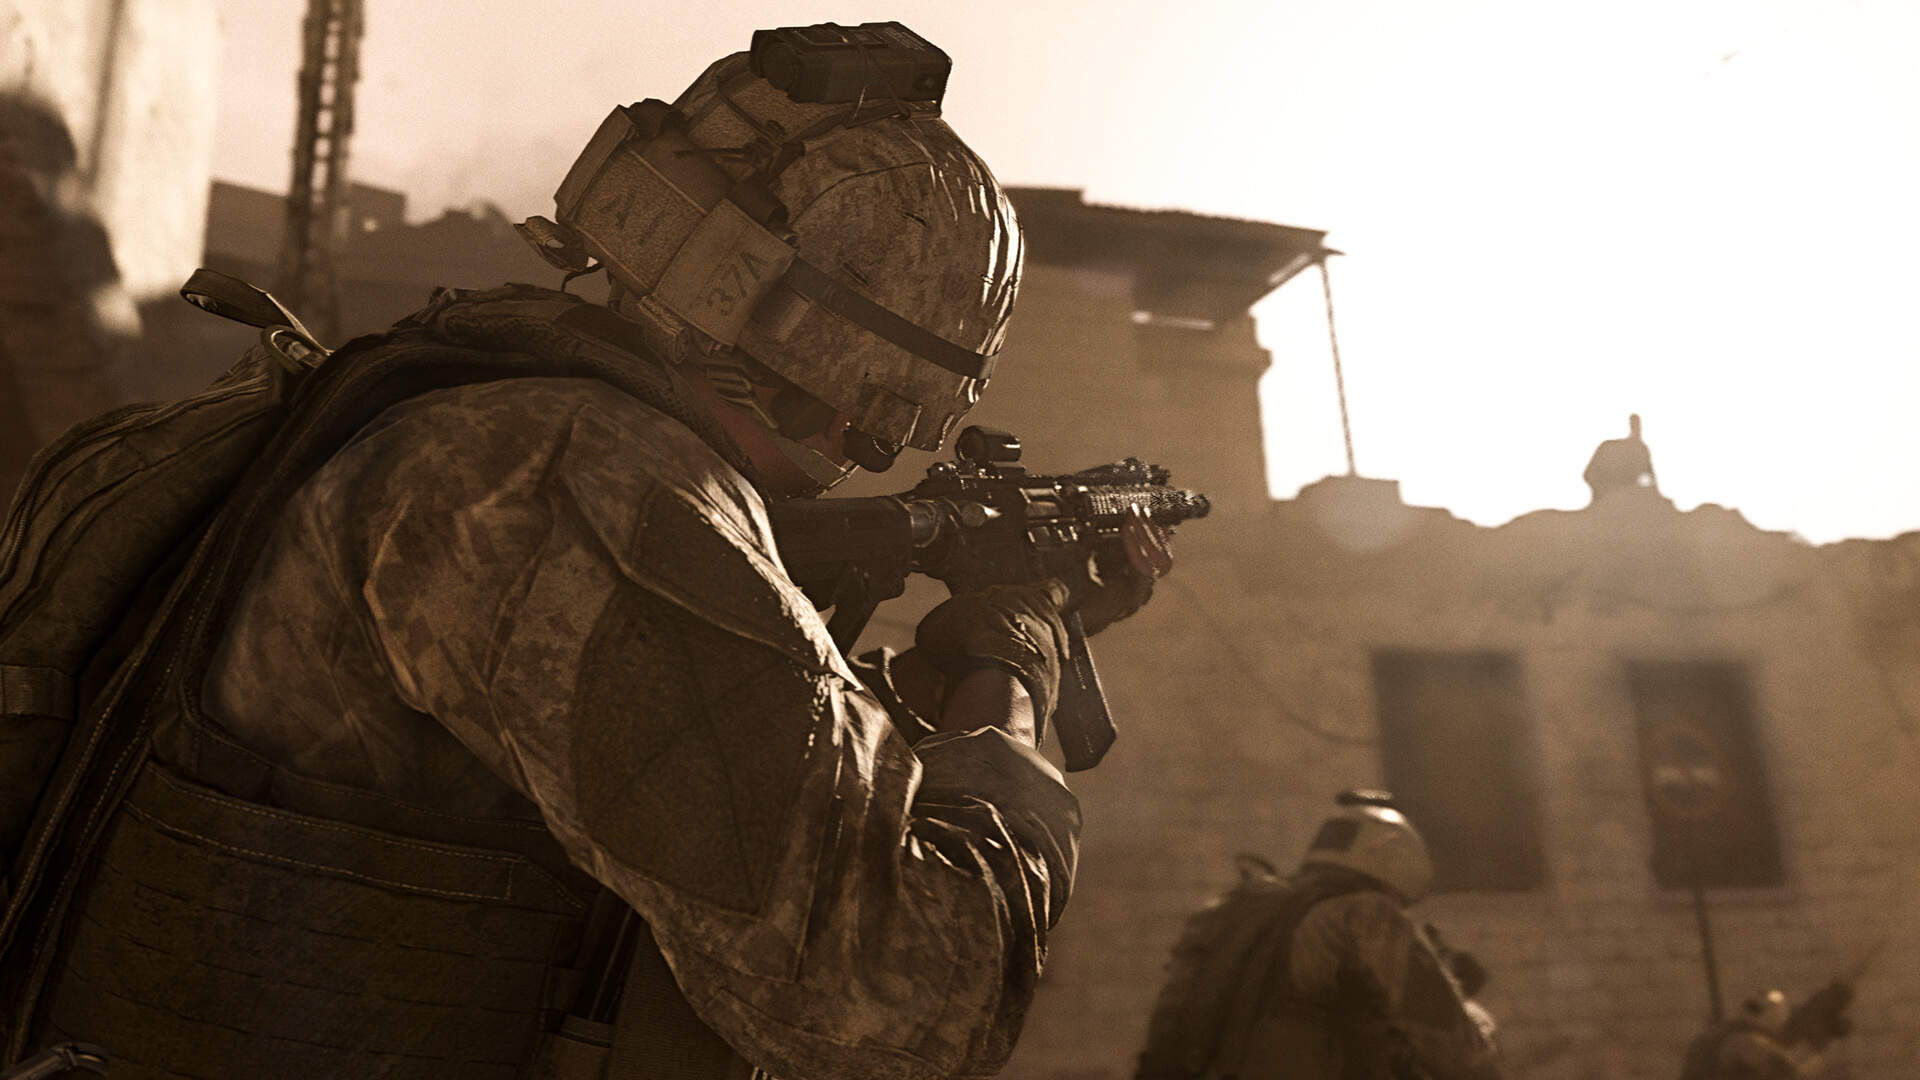 Call of Duty Modern Warfare - Is it a Reboot, Remake or Sequel?